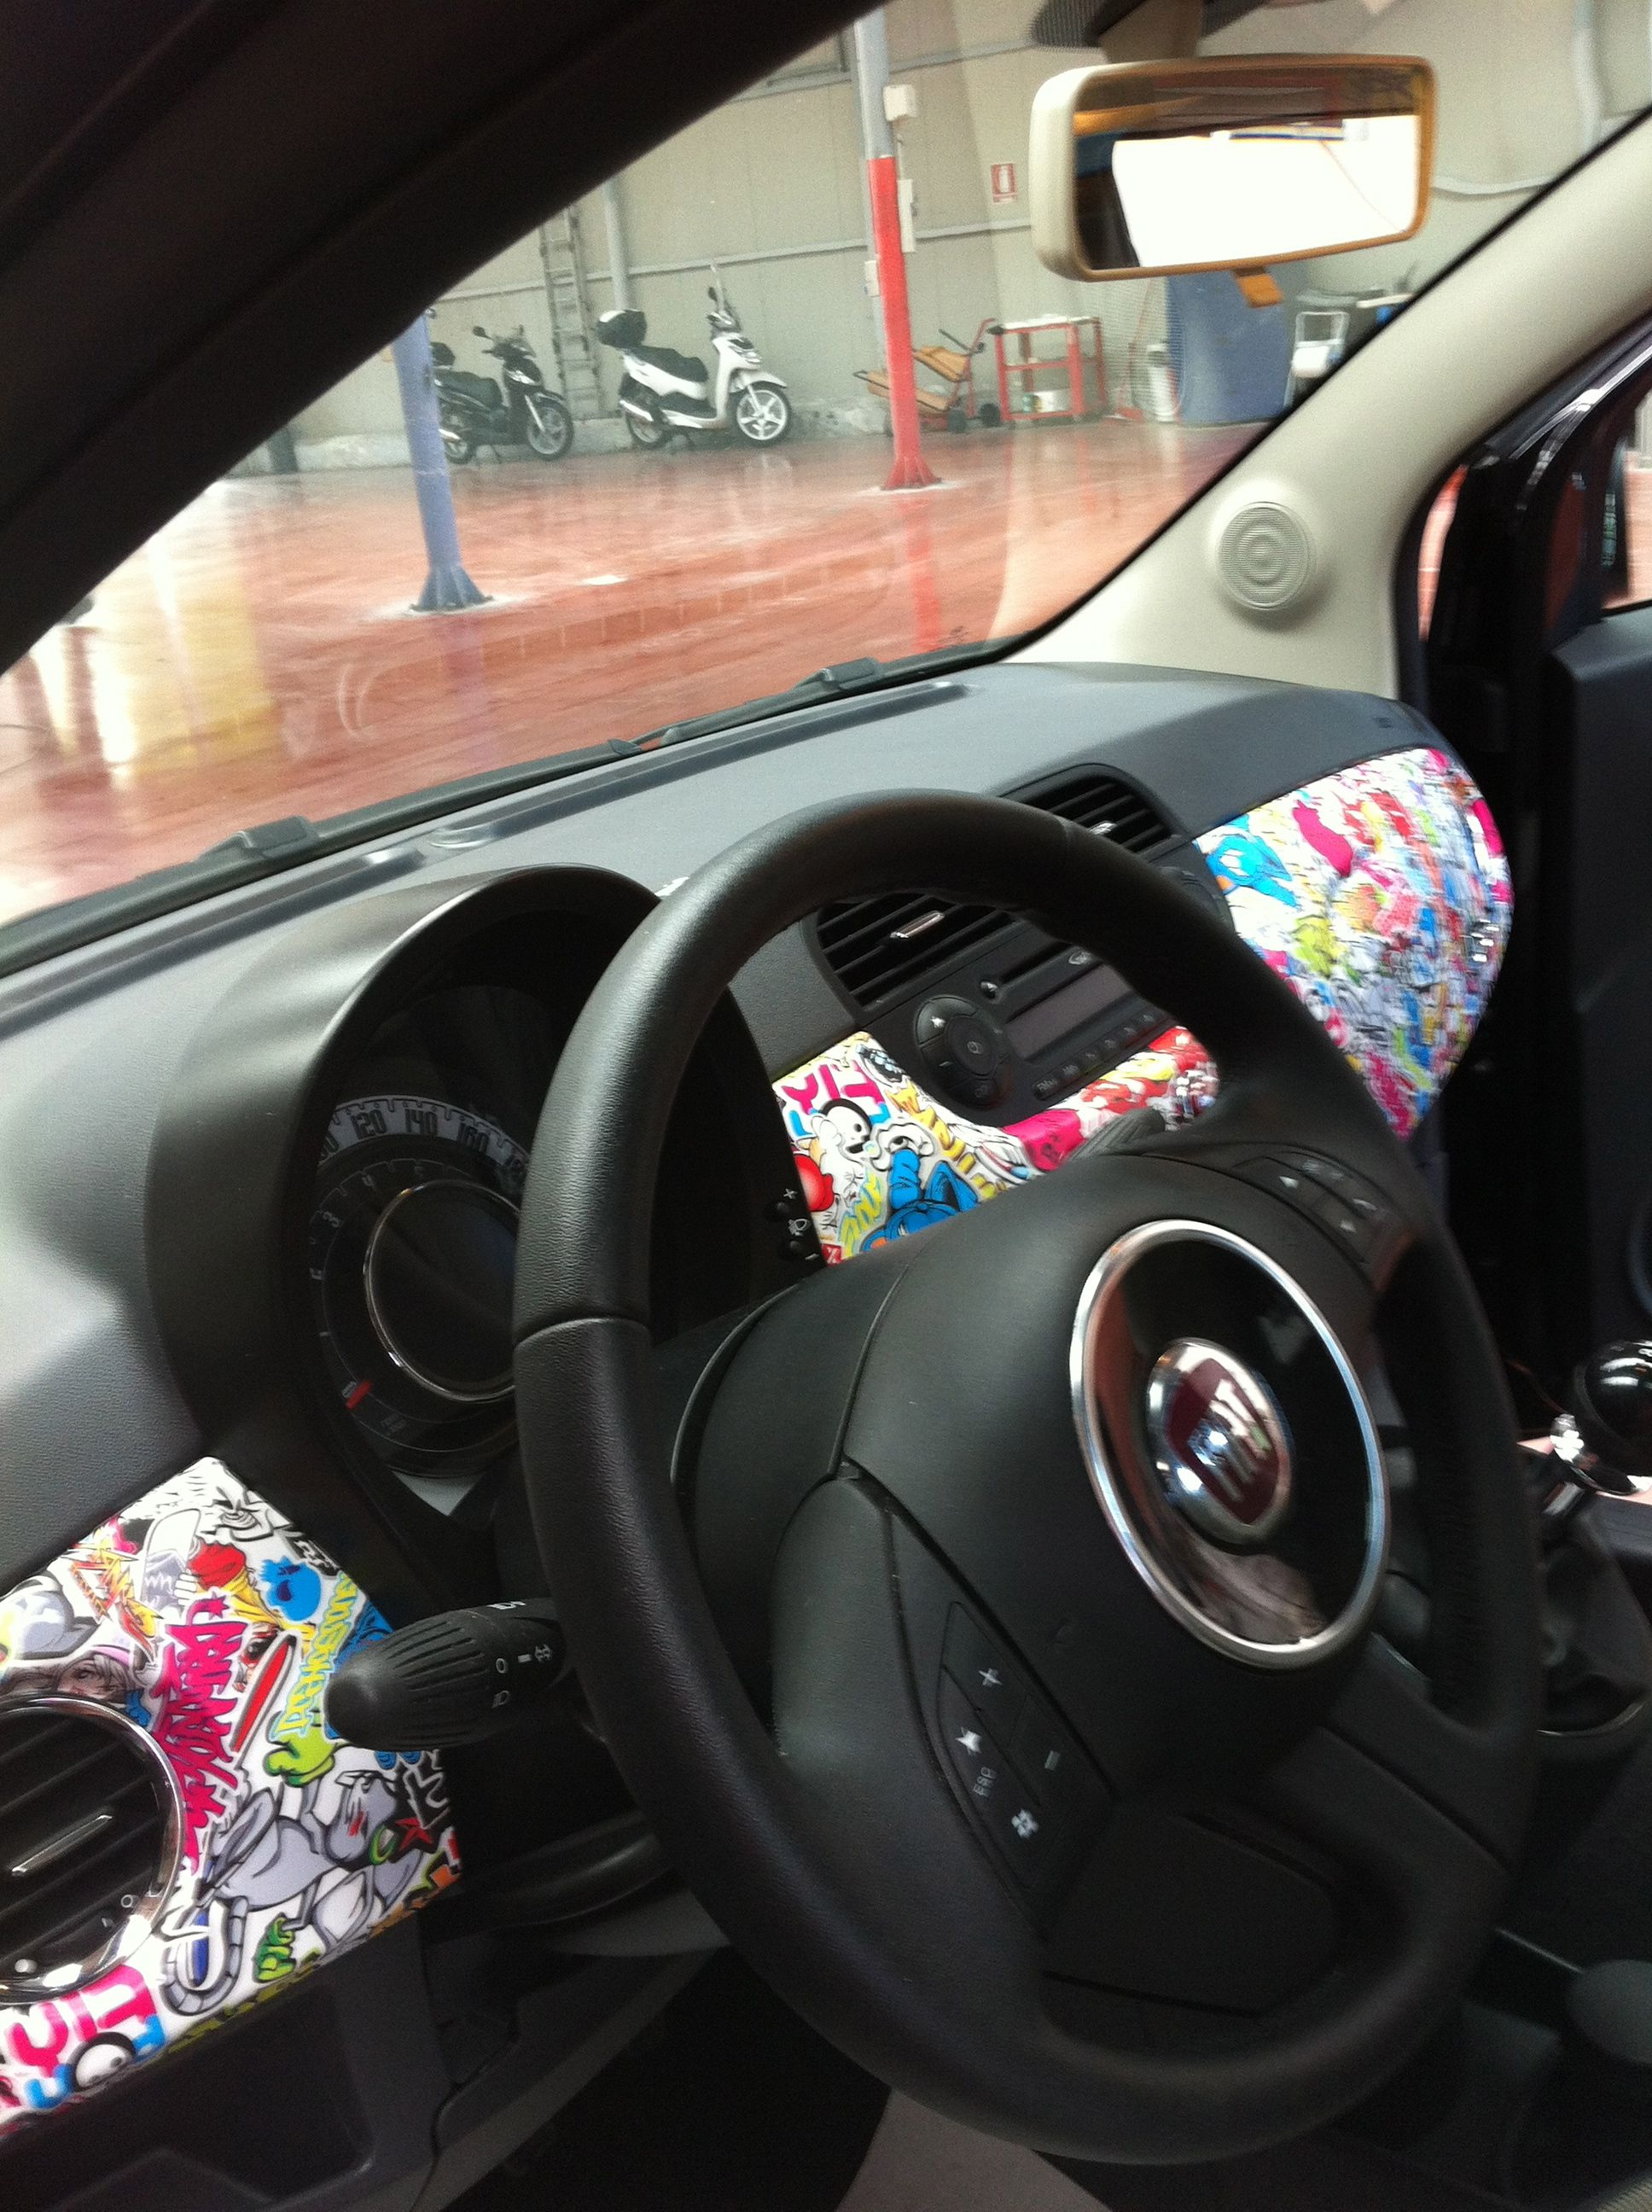 Car Wrap New Fiat 500 Www Daddario It Vinyl Wrap Car Car Wrap